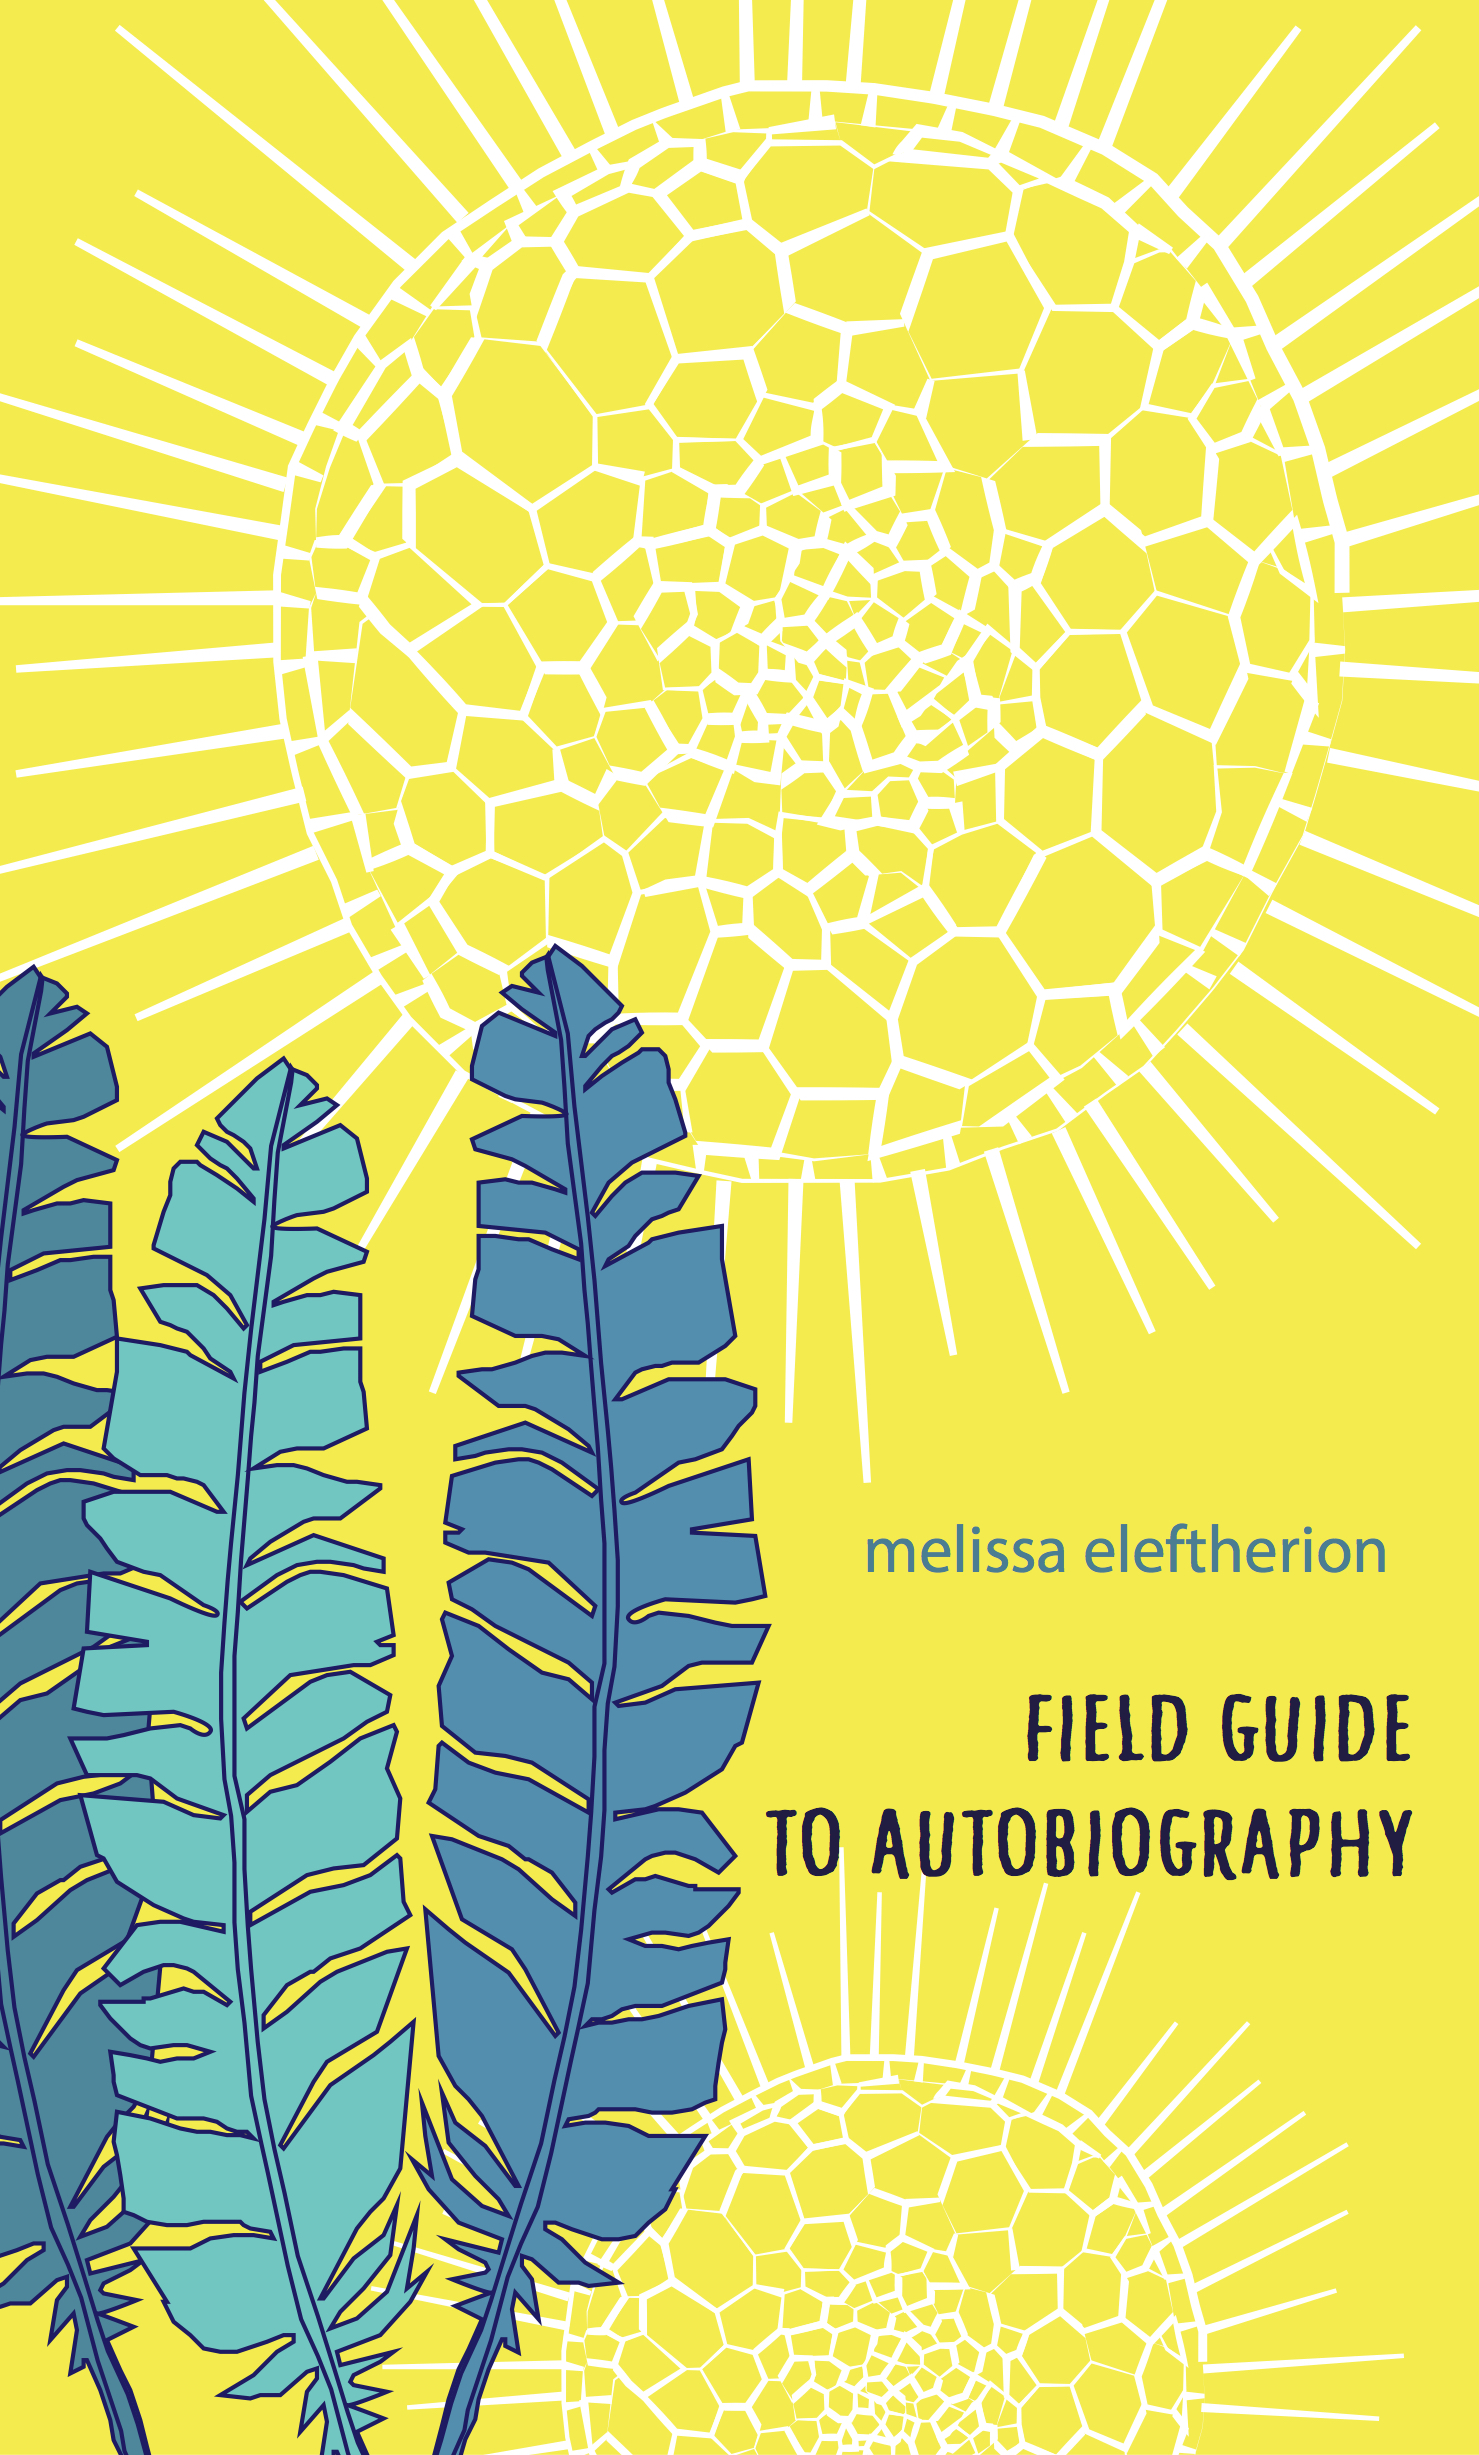 - Purchase field guide to autobiographyfrom Amazon.com